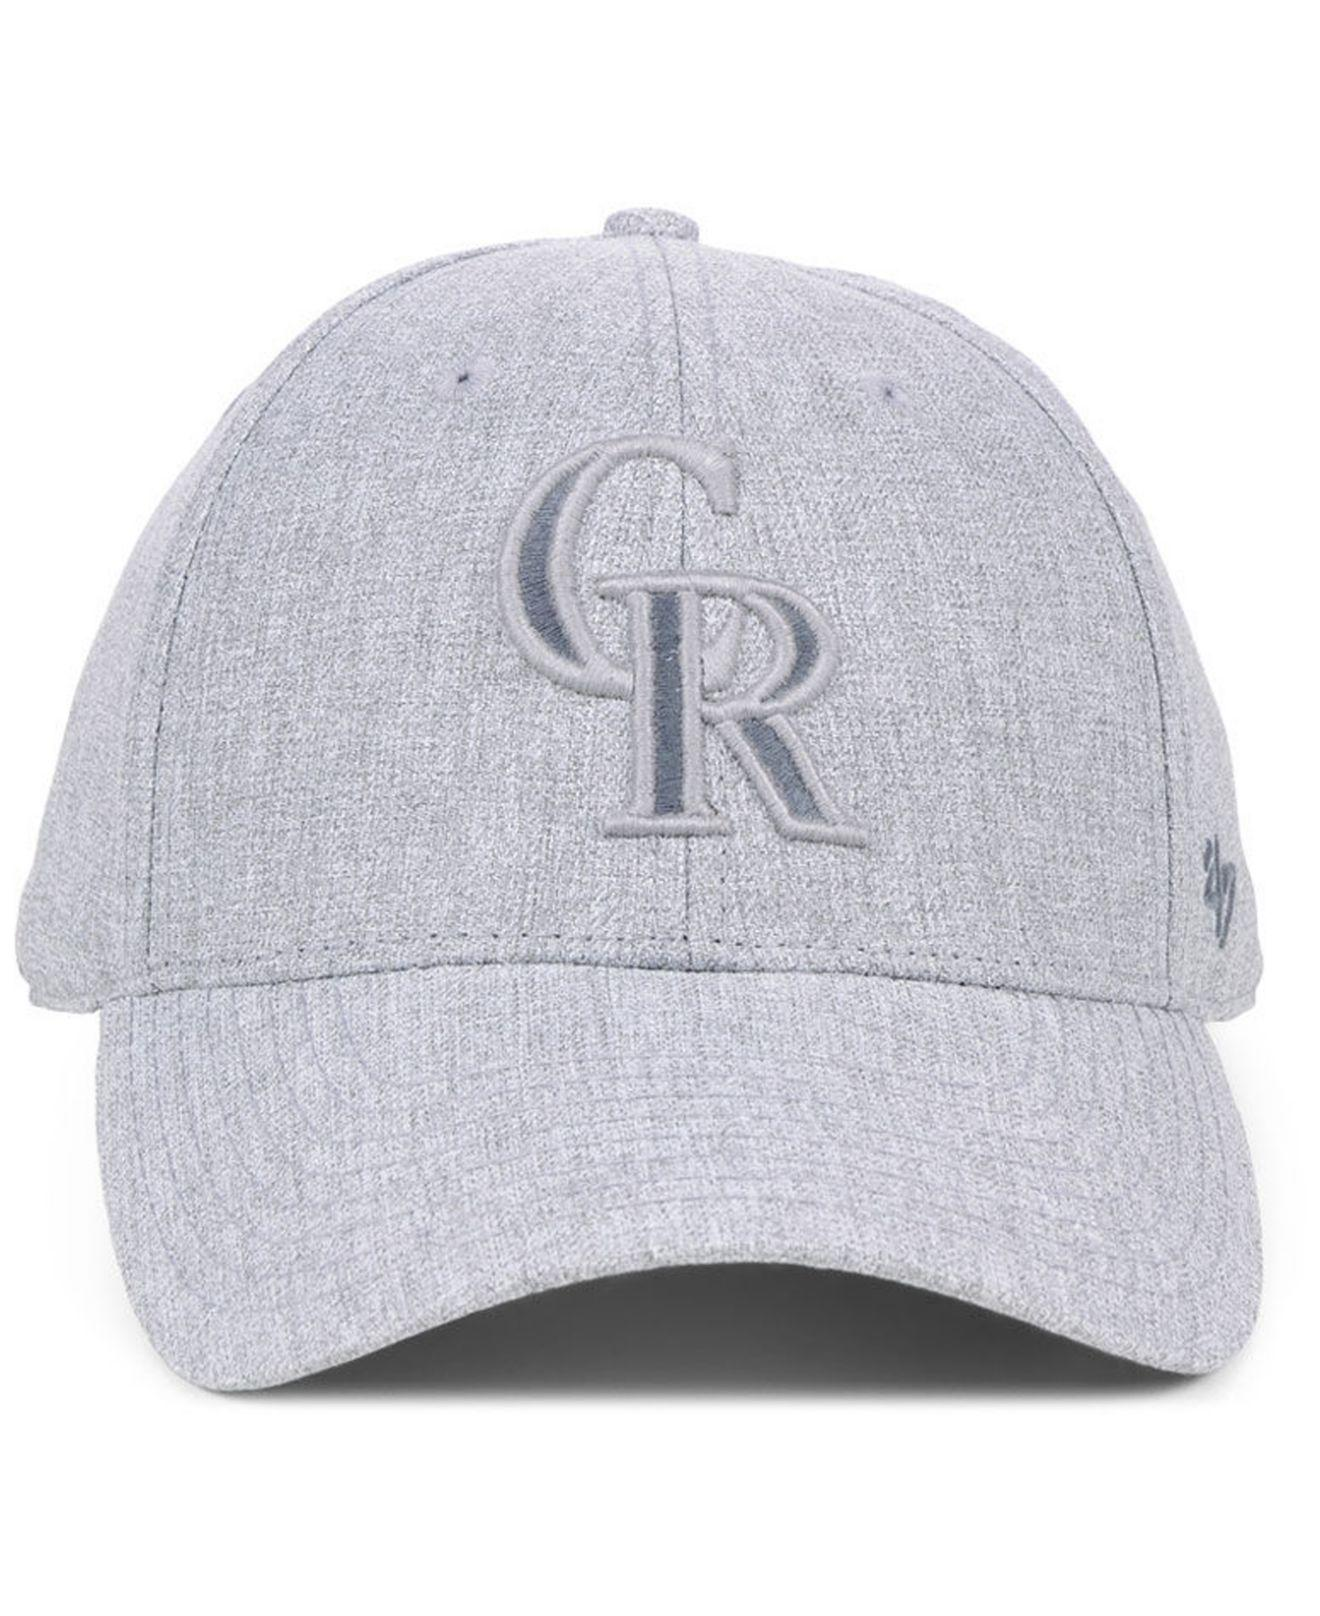 competitive price f329c 22a5f Lyst - 47 Brand Colorado Rockies Flecked Mvp Cap in Gray for Men